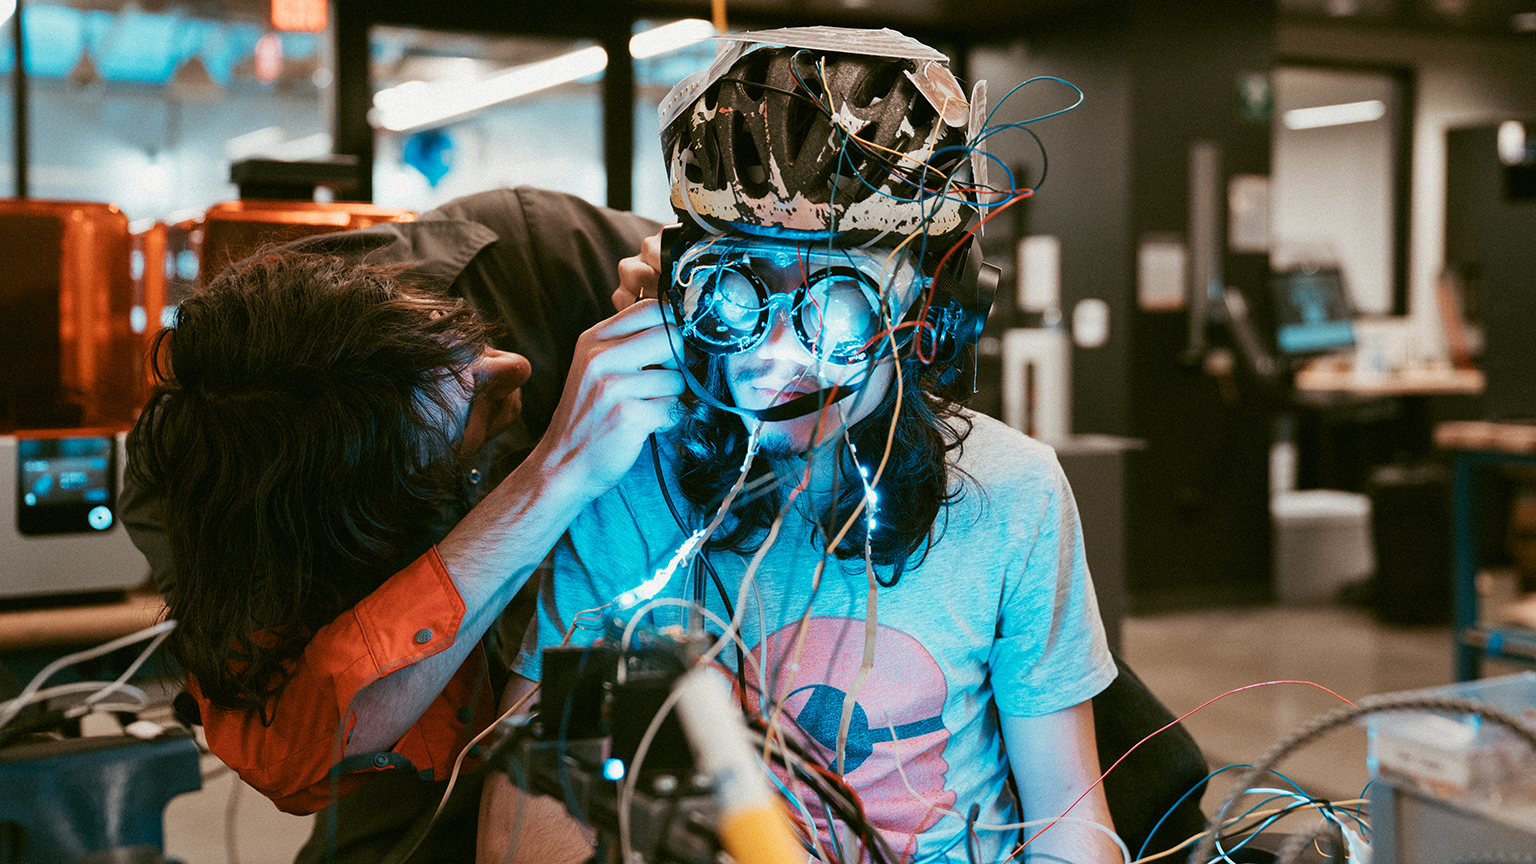 Two hackathon competitors work on a helmet and goggles that create music.